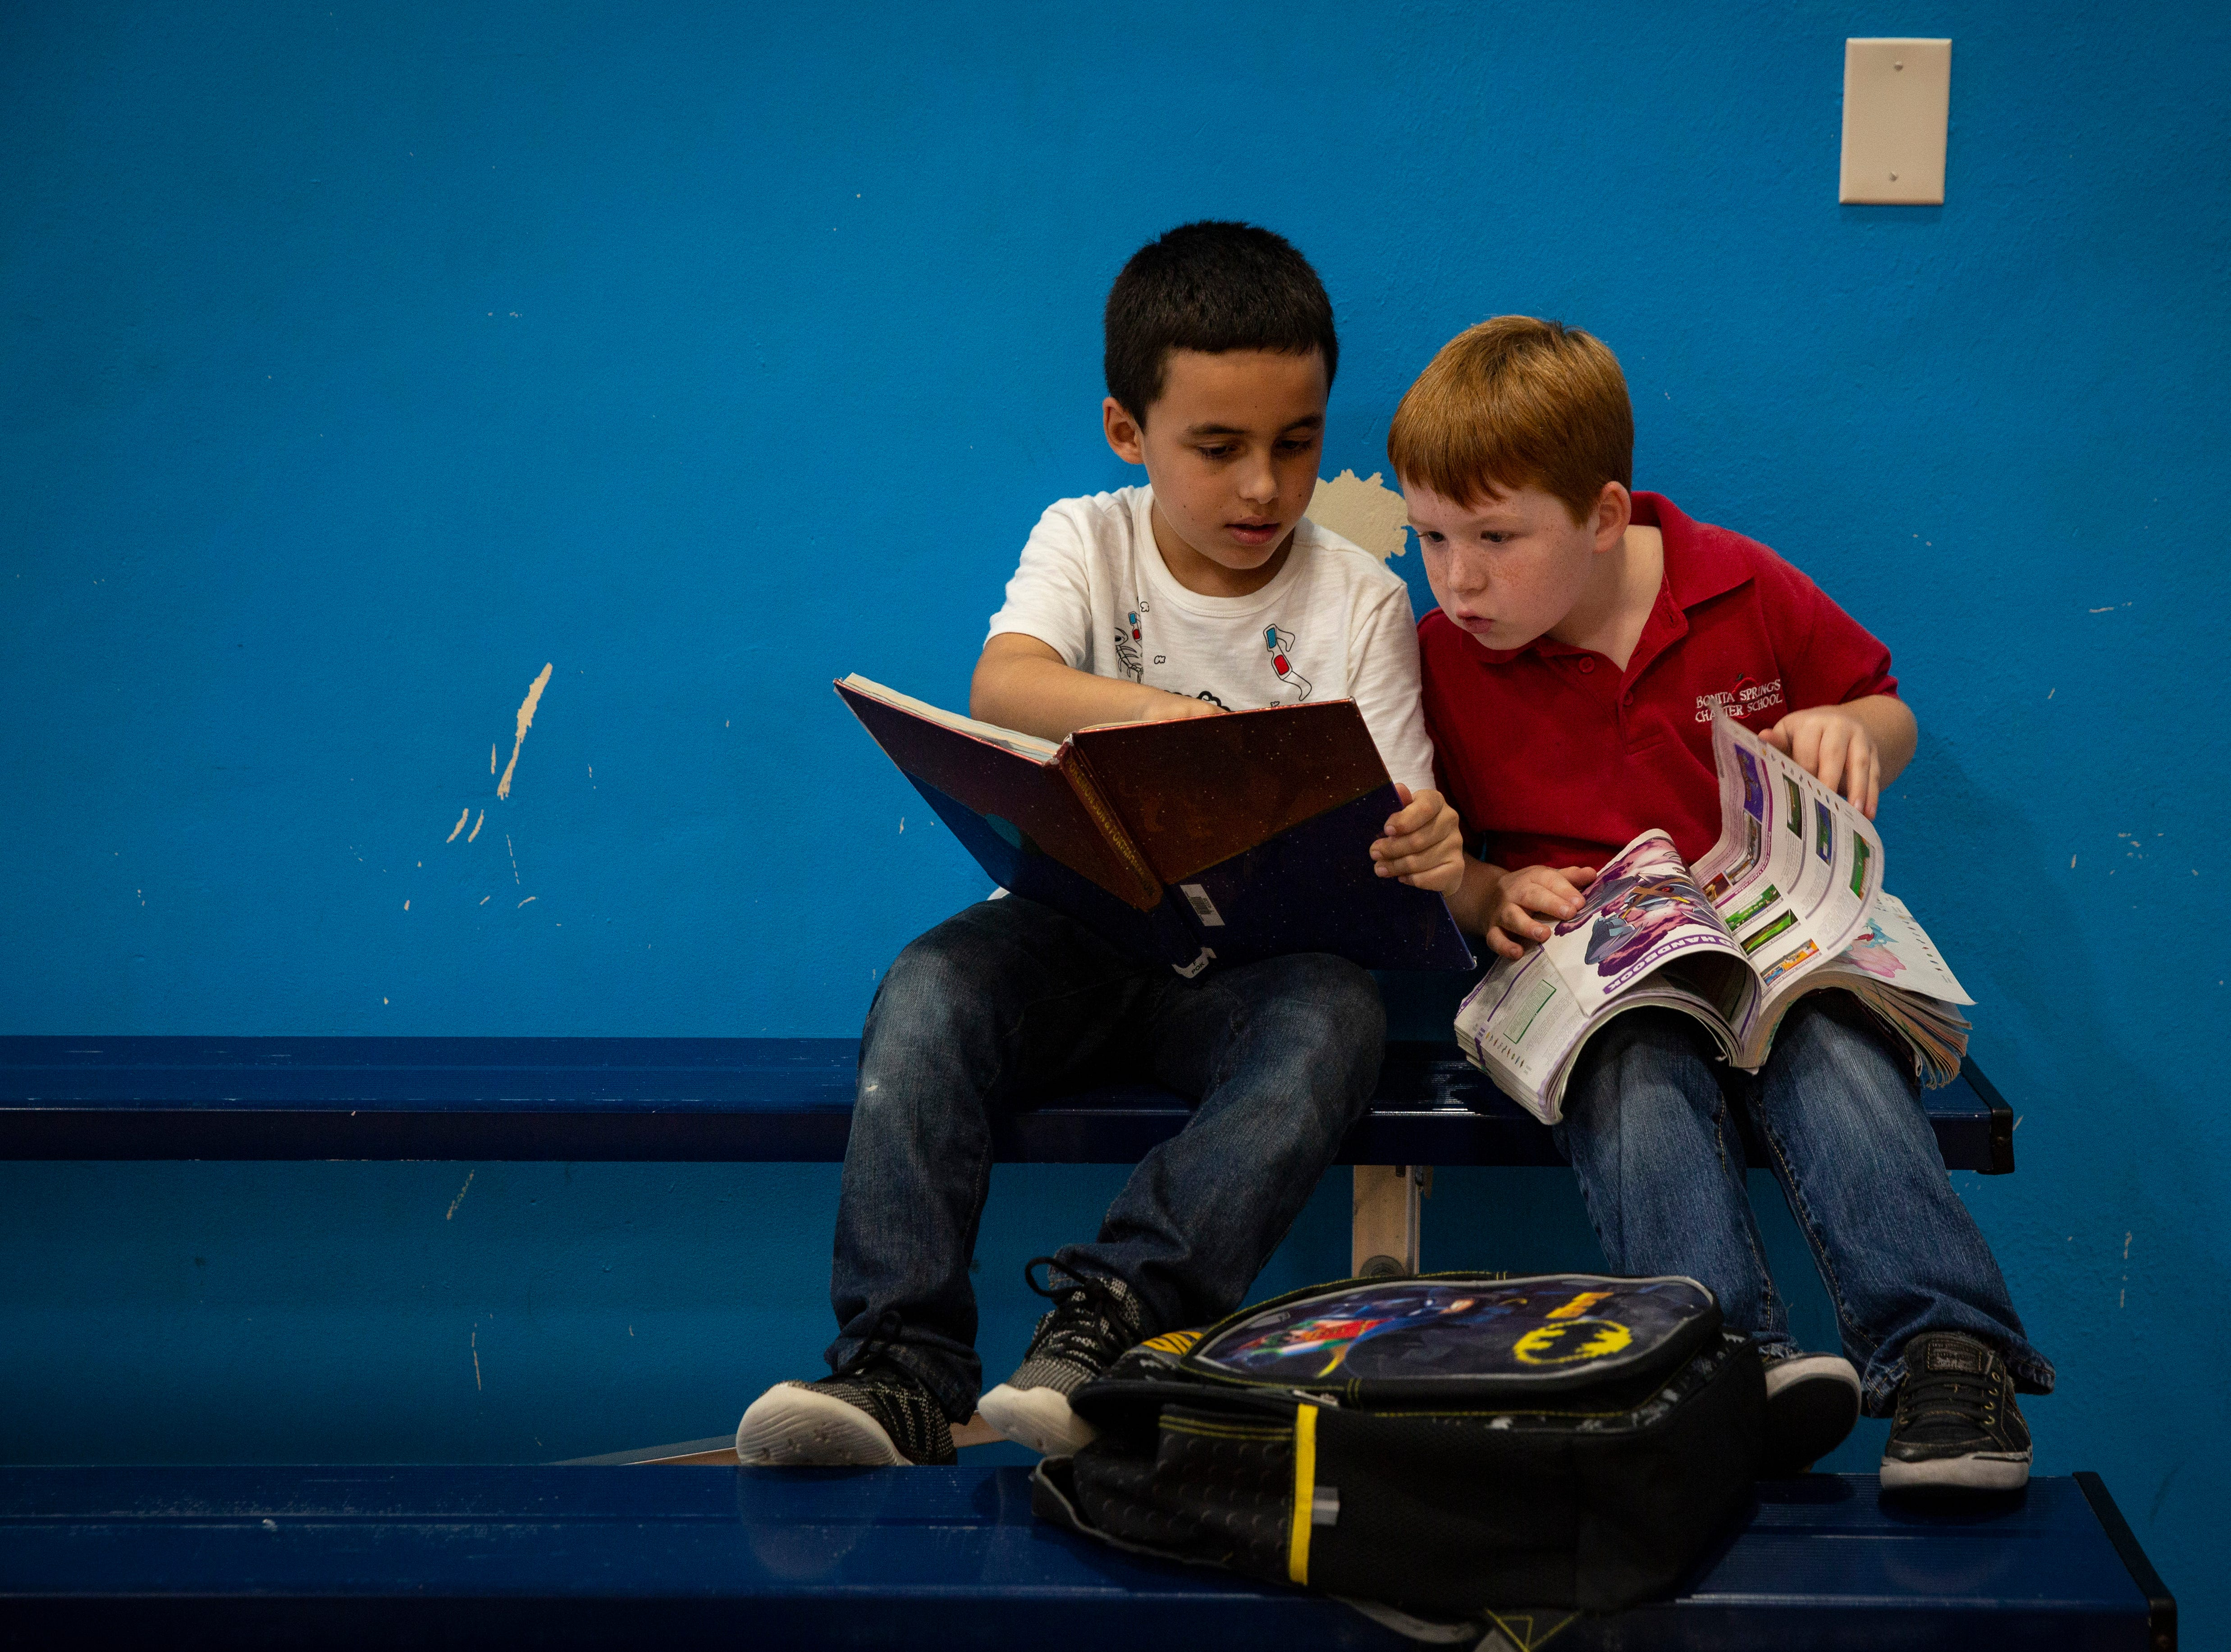 Julian Mejia, 7, left, and his friend, Dylan Wright, 7 sit by the gym bleachers reading and learning about Pokemon from books checked out of their school library, during the YMCA  after school program on Wednesday afternoon, Dec. 19, 2018, in Bonita Springs.